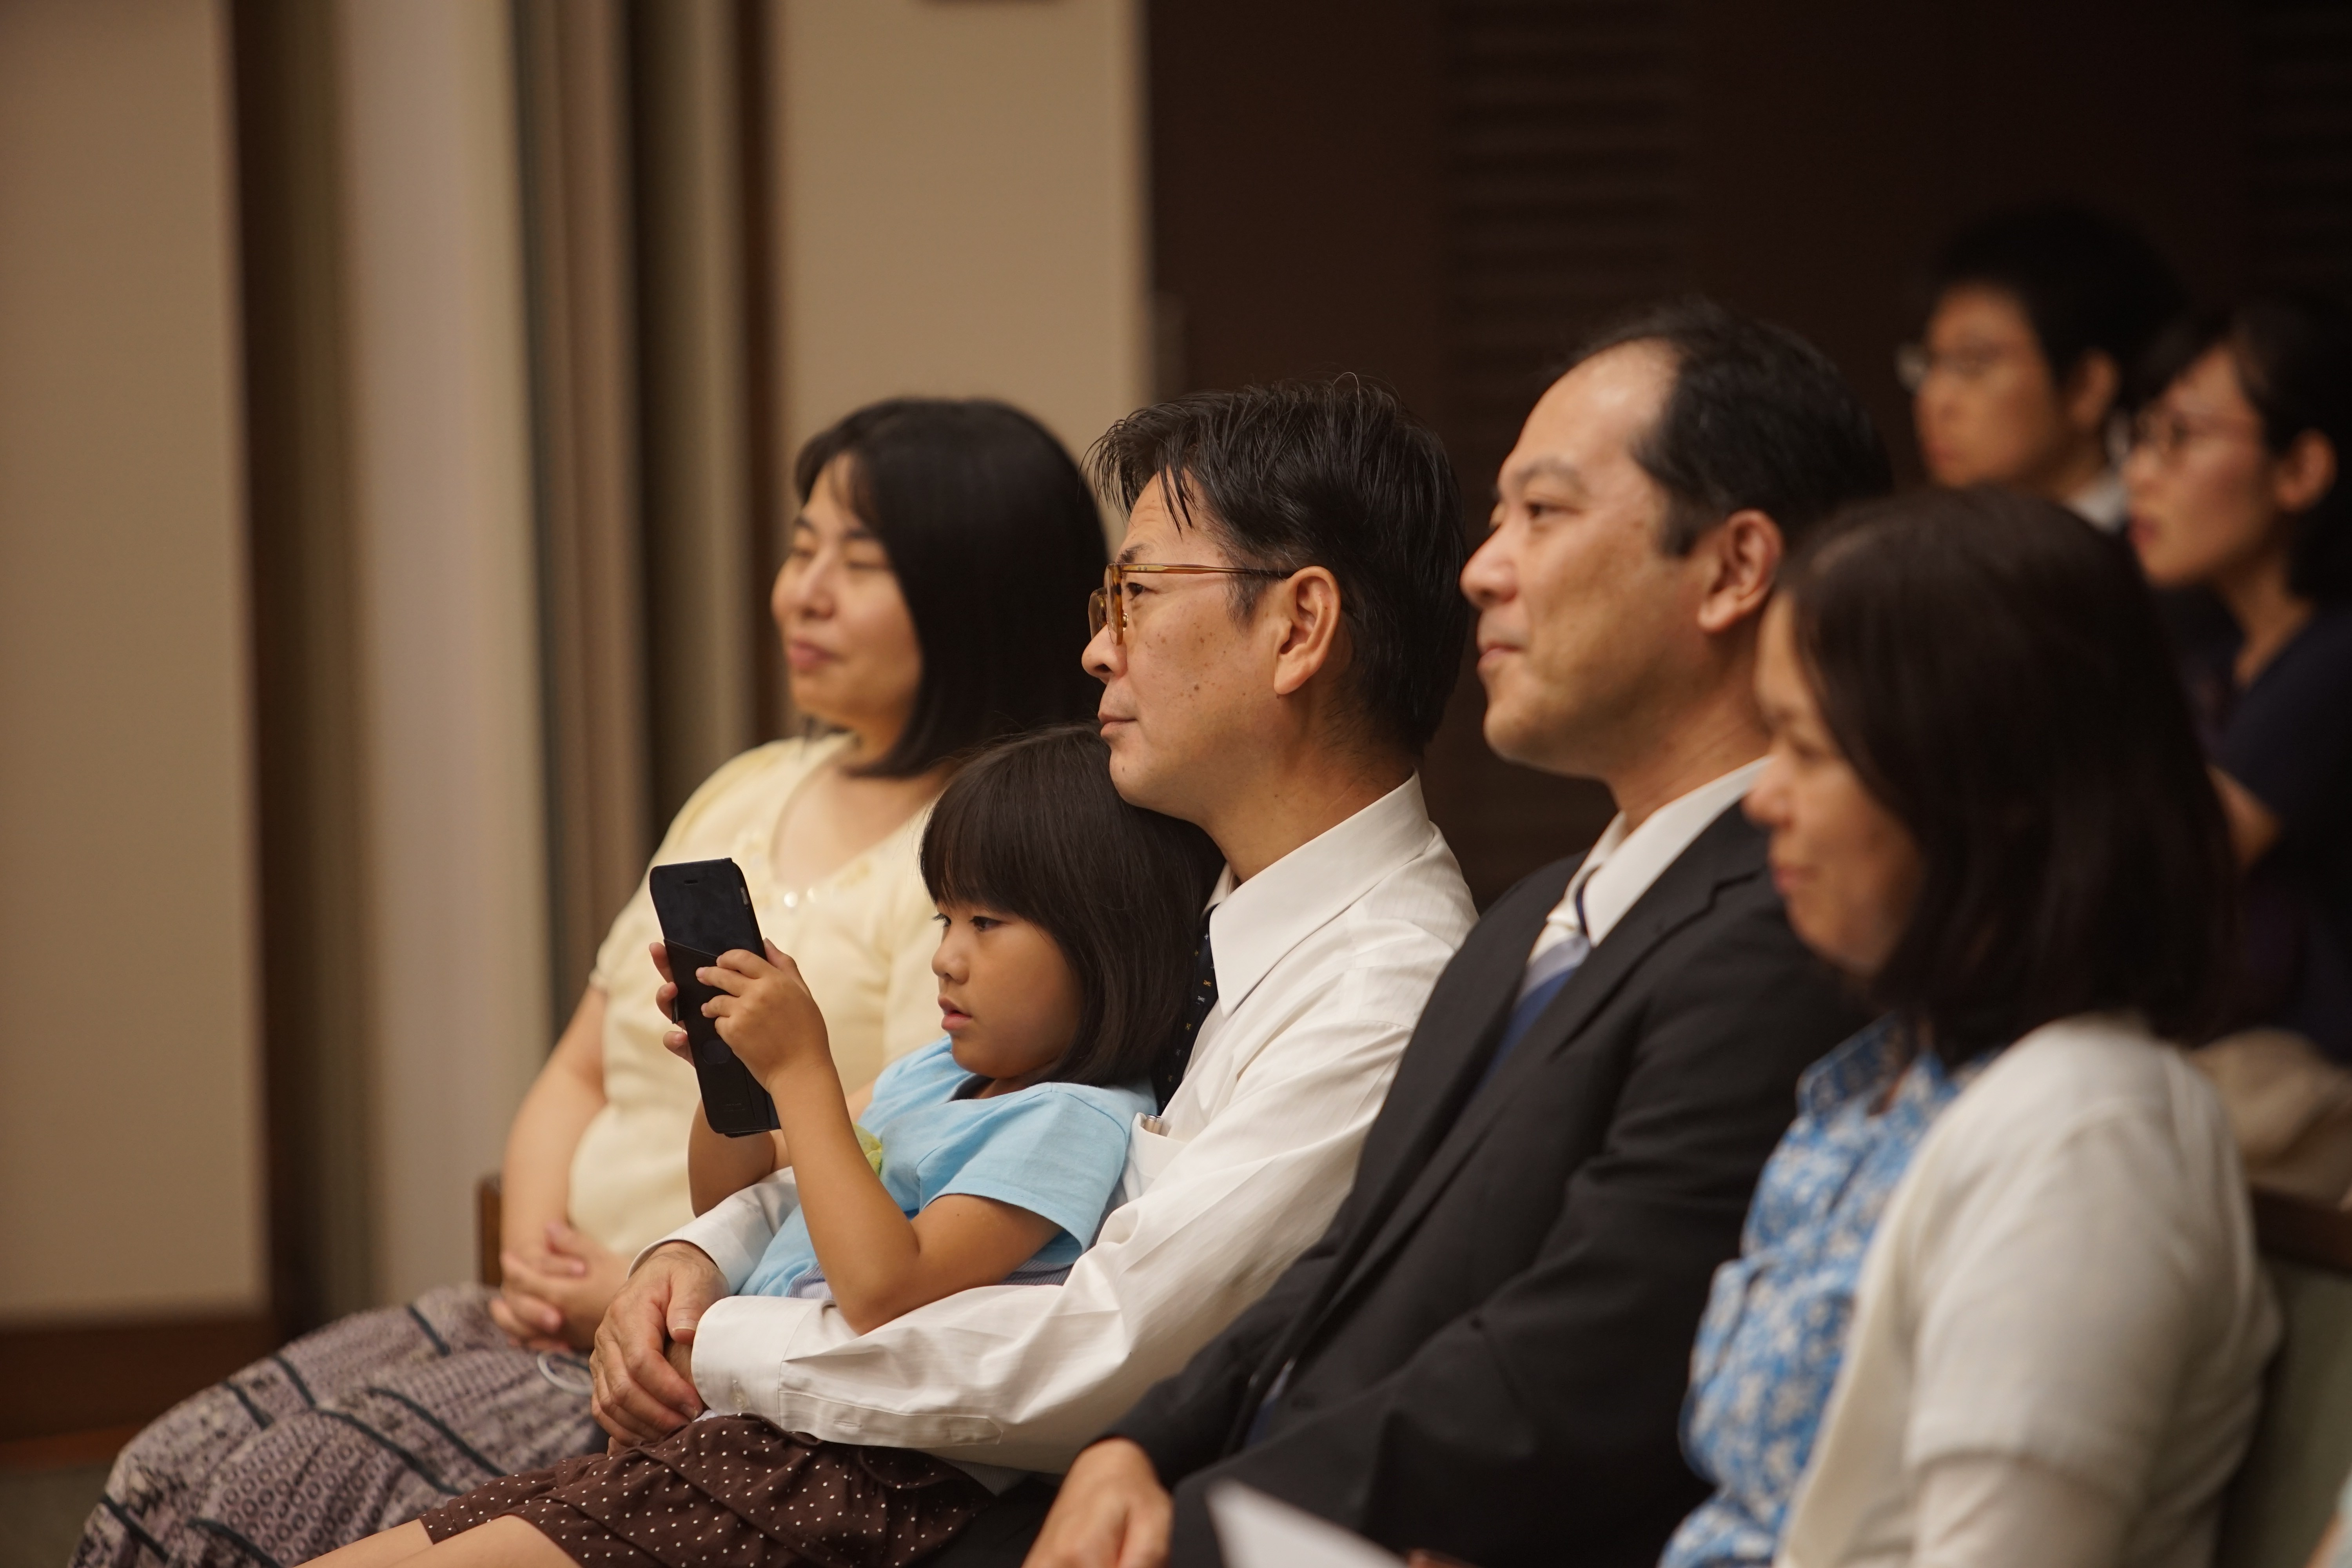 Members gather for a devotional with Elder Ulisses Soares in Sapporo, Japan, on Aug. 30, 2019.